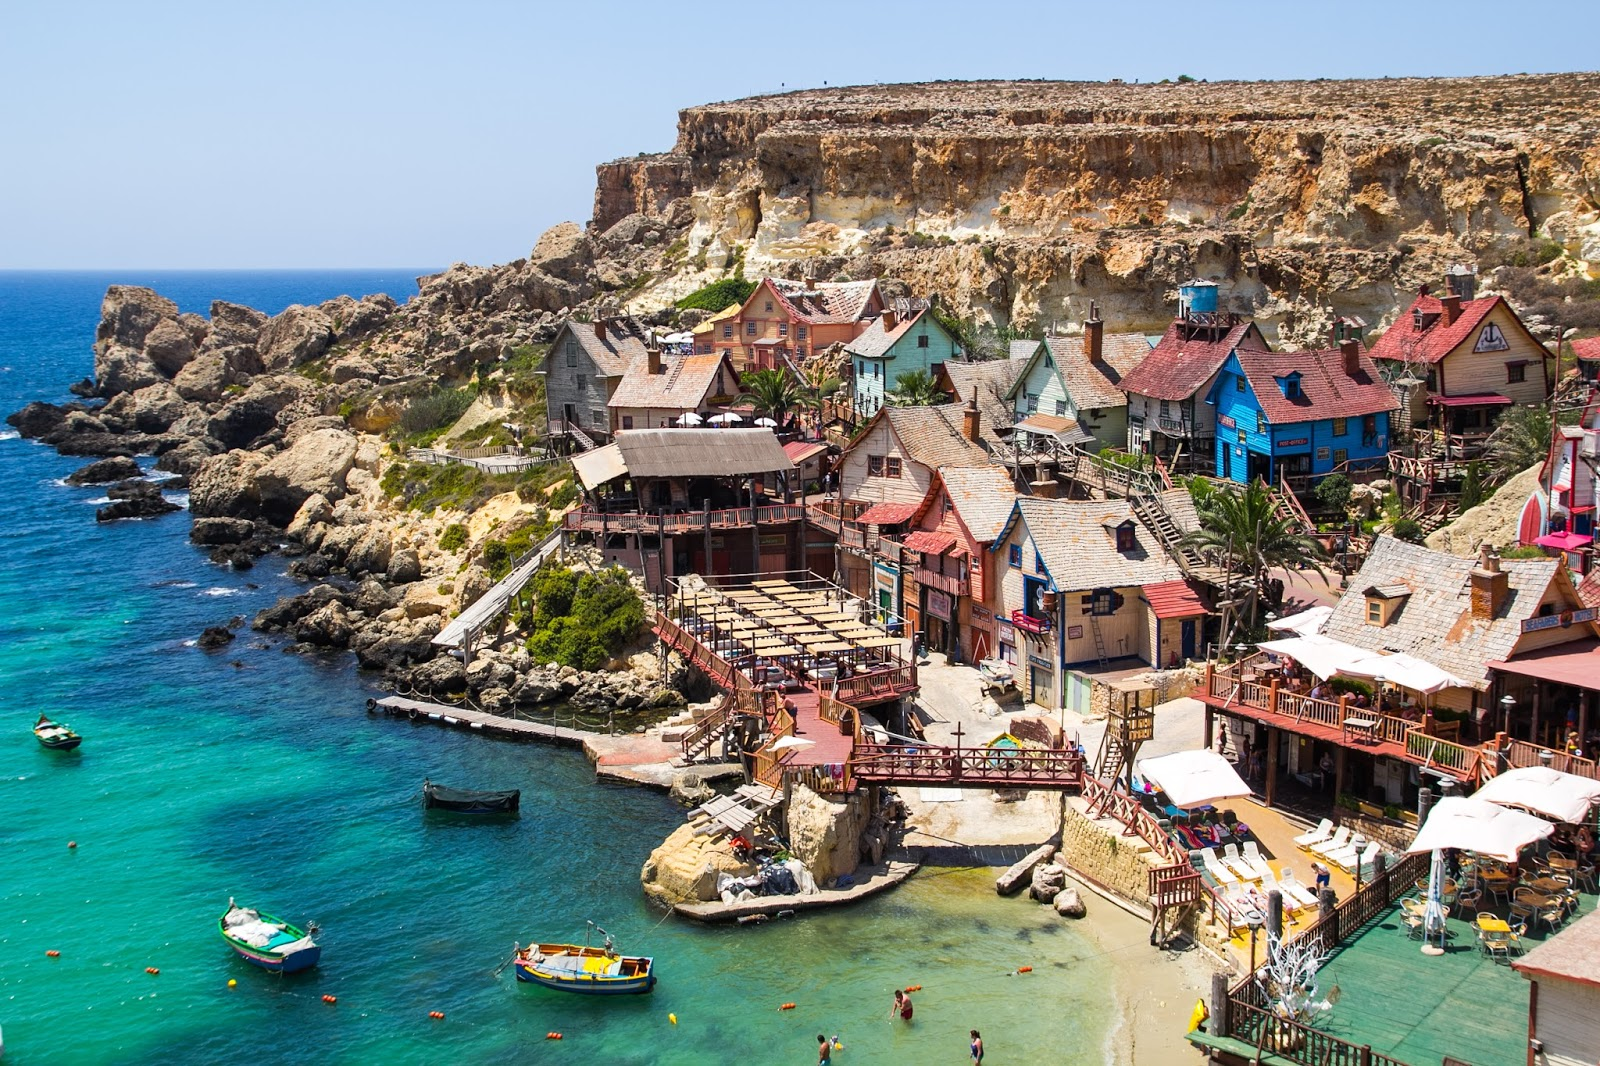 Sursa foto: http://travelwithkally.blogspot.ro/2015/07/popeye-village-in-malta.html